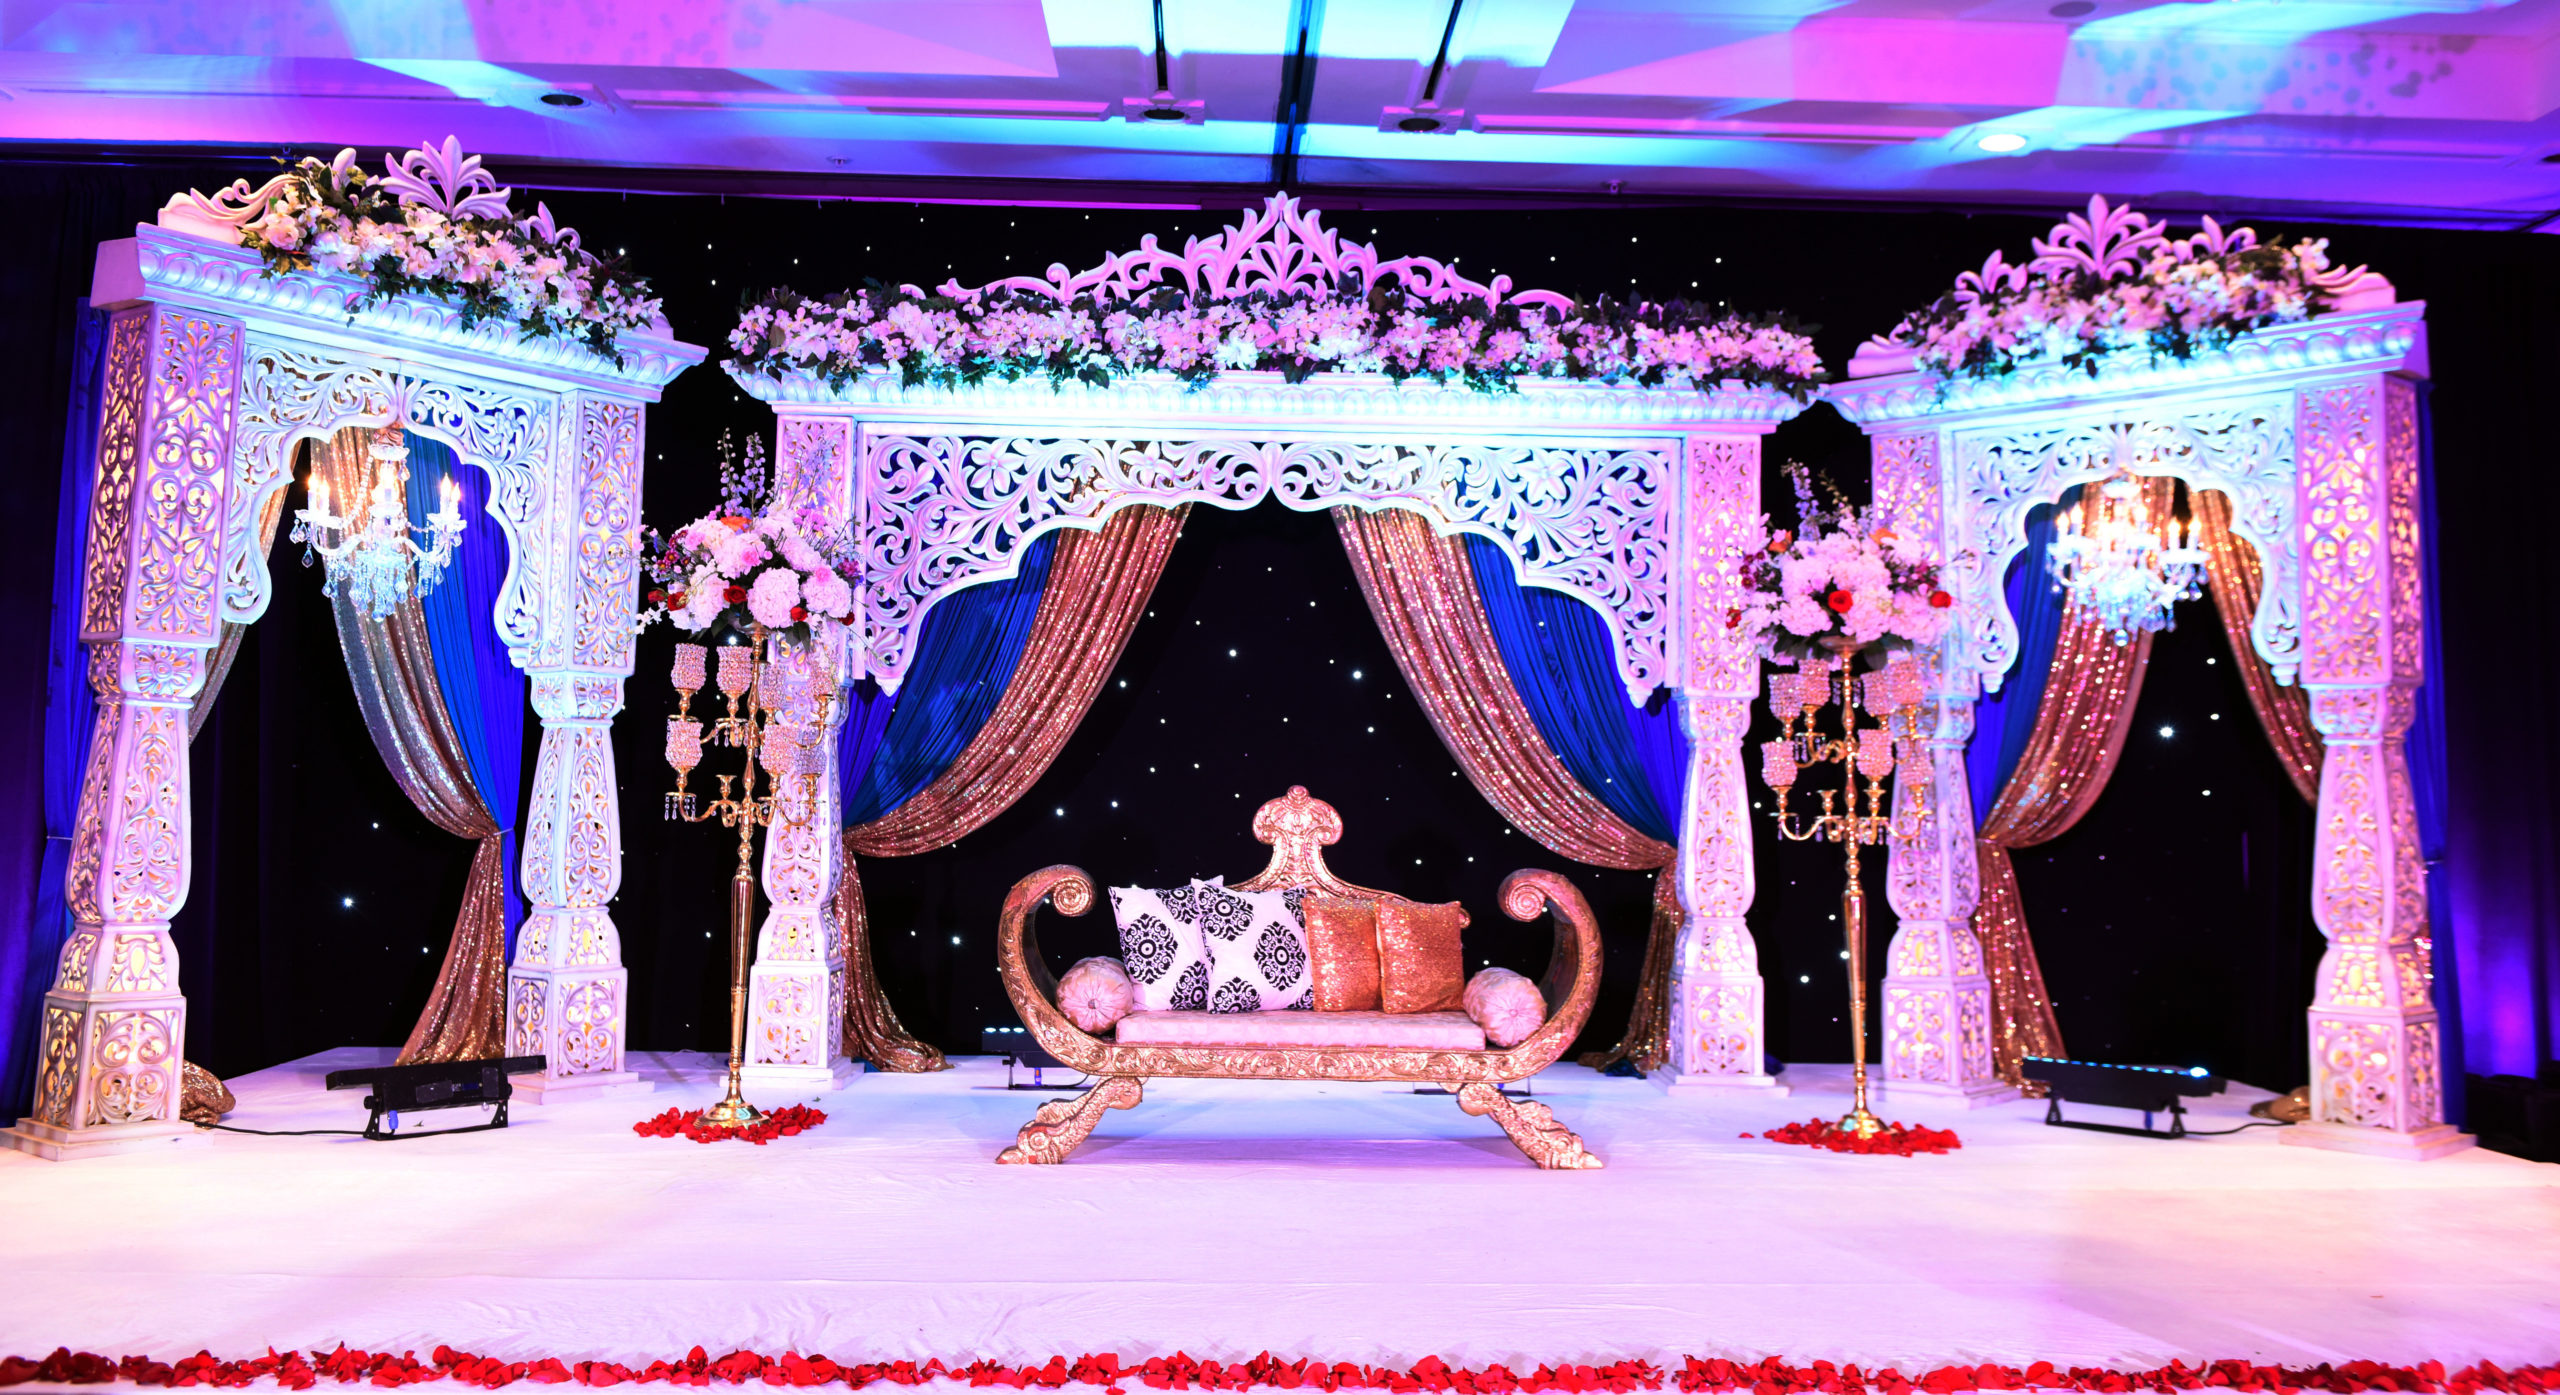 Jodha akbar mandap rental rentals atlanta dallas reception enagament LED backdrop